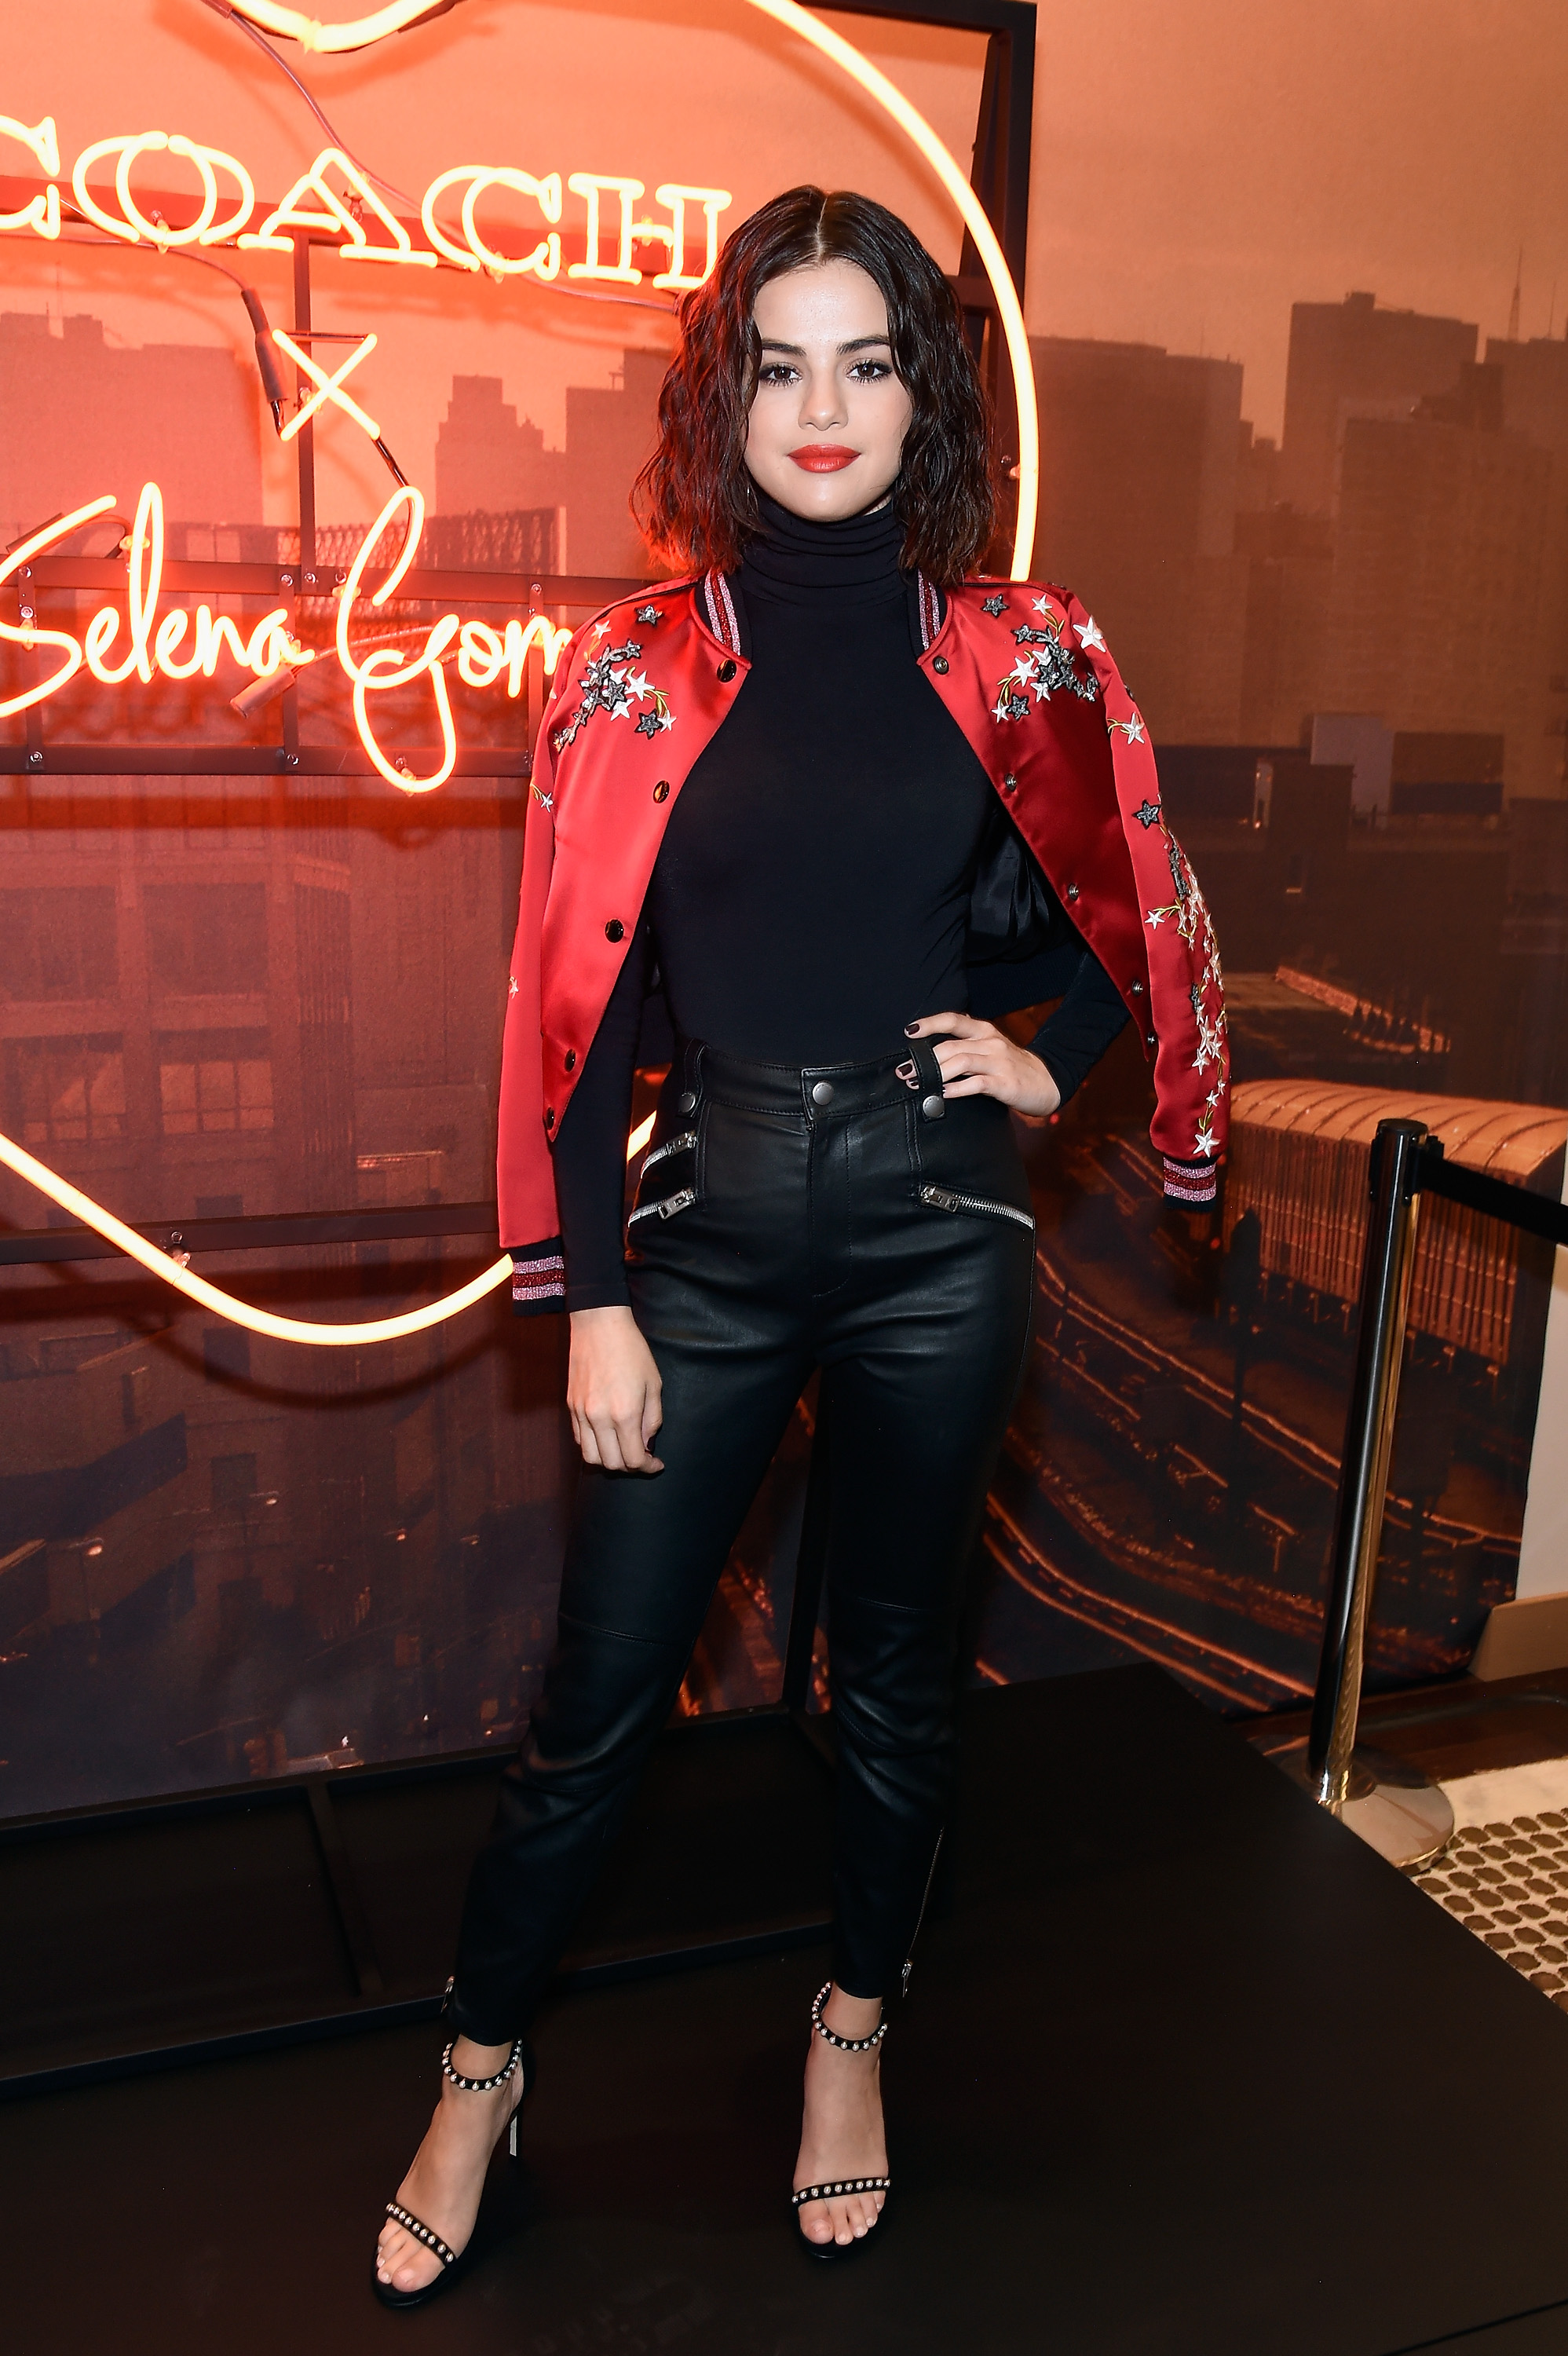 NEW YORK, NY - SEPTEMBER 13: Selena Gomez poses during the Coach In-Store Event with Selena Gomez at Coach Boutique on September 13, 2017 in New York City. (Photo by Kevin Mazur/Getty Images for Coach)